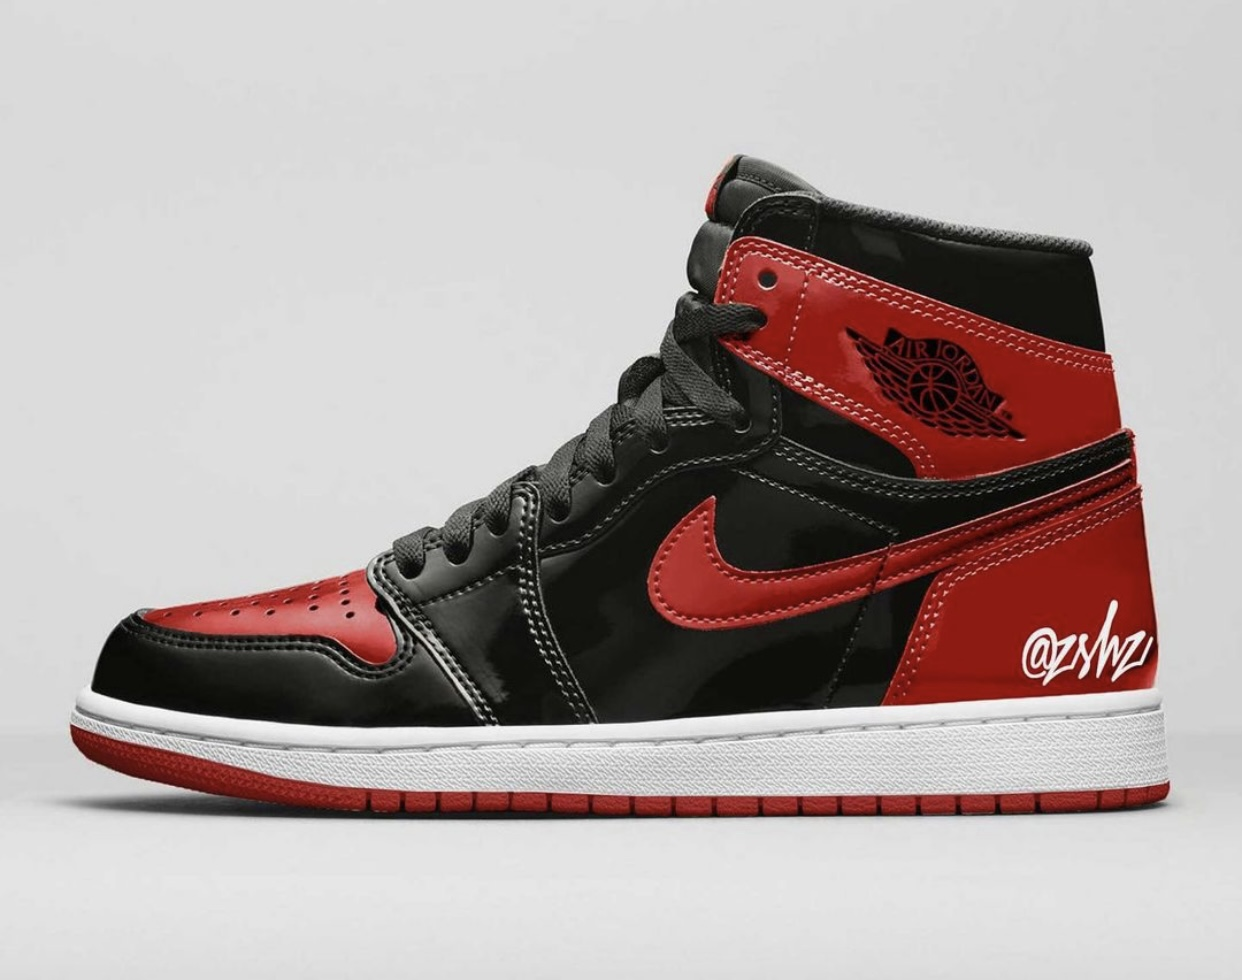 Air Jordan 1 Bred Patent Leather 555088-063 Release Date Info